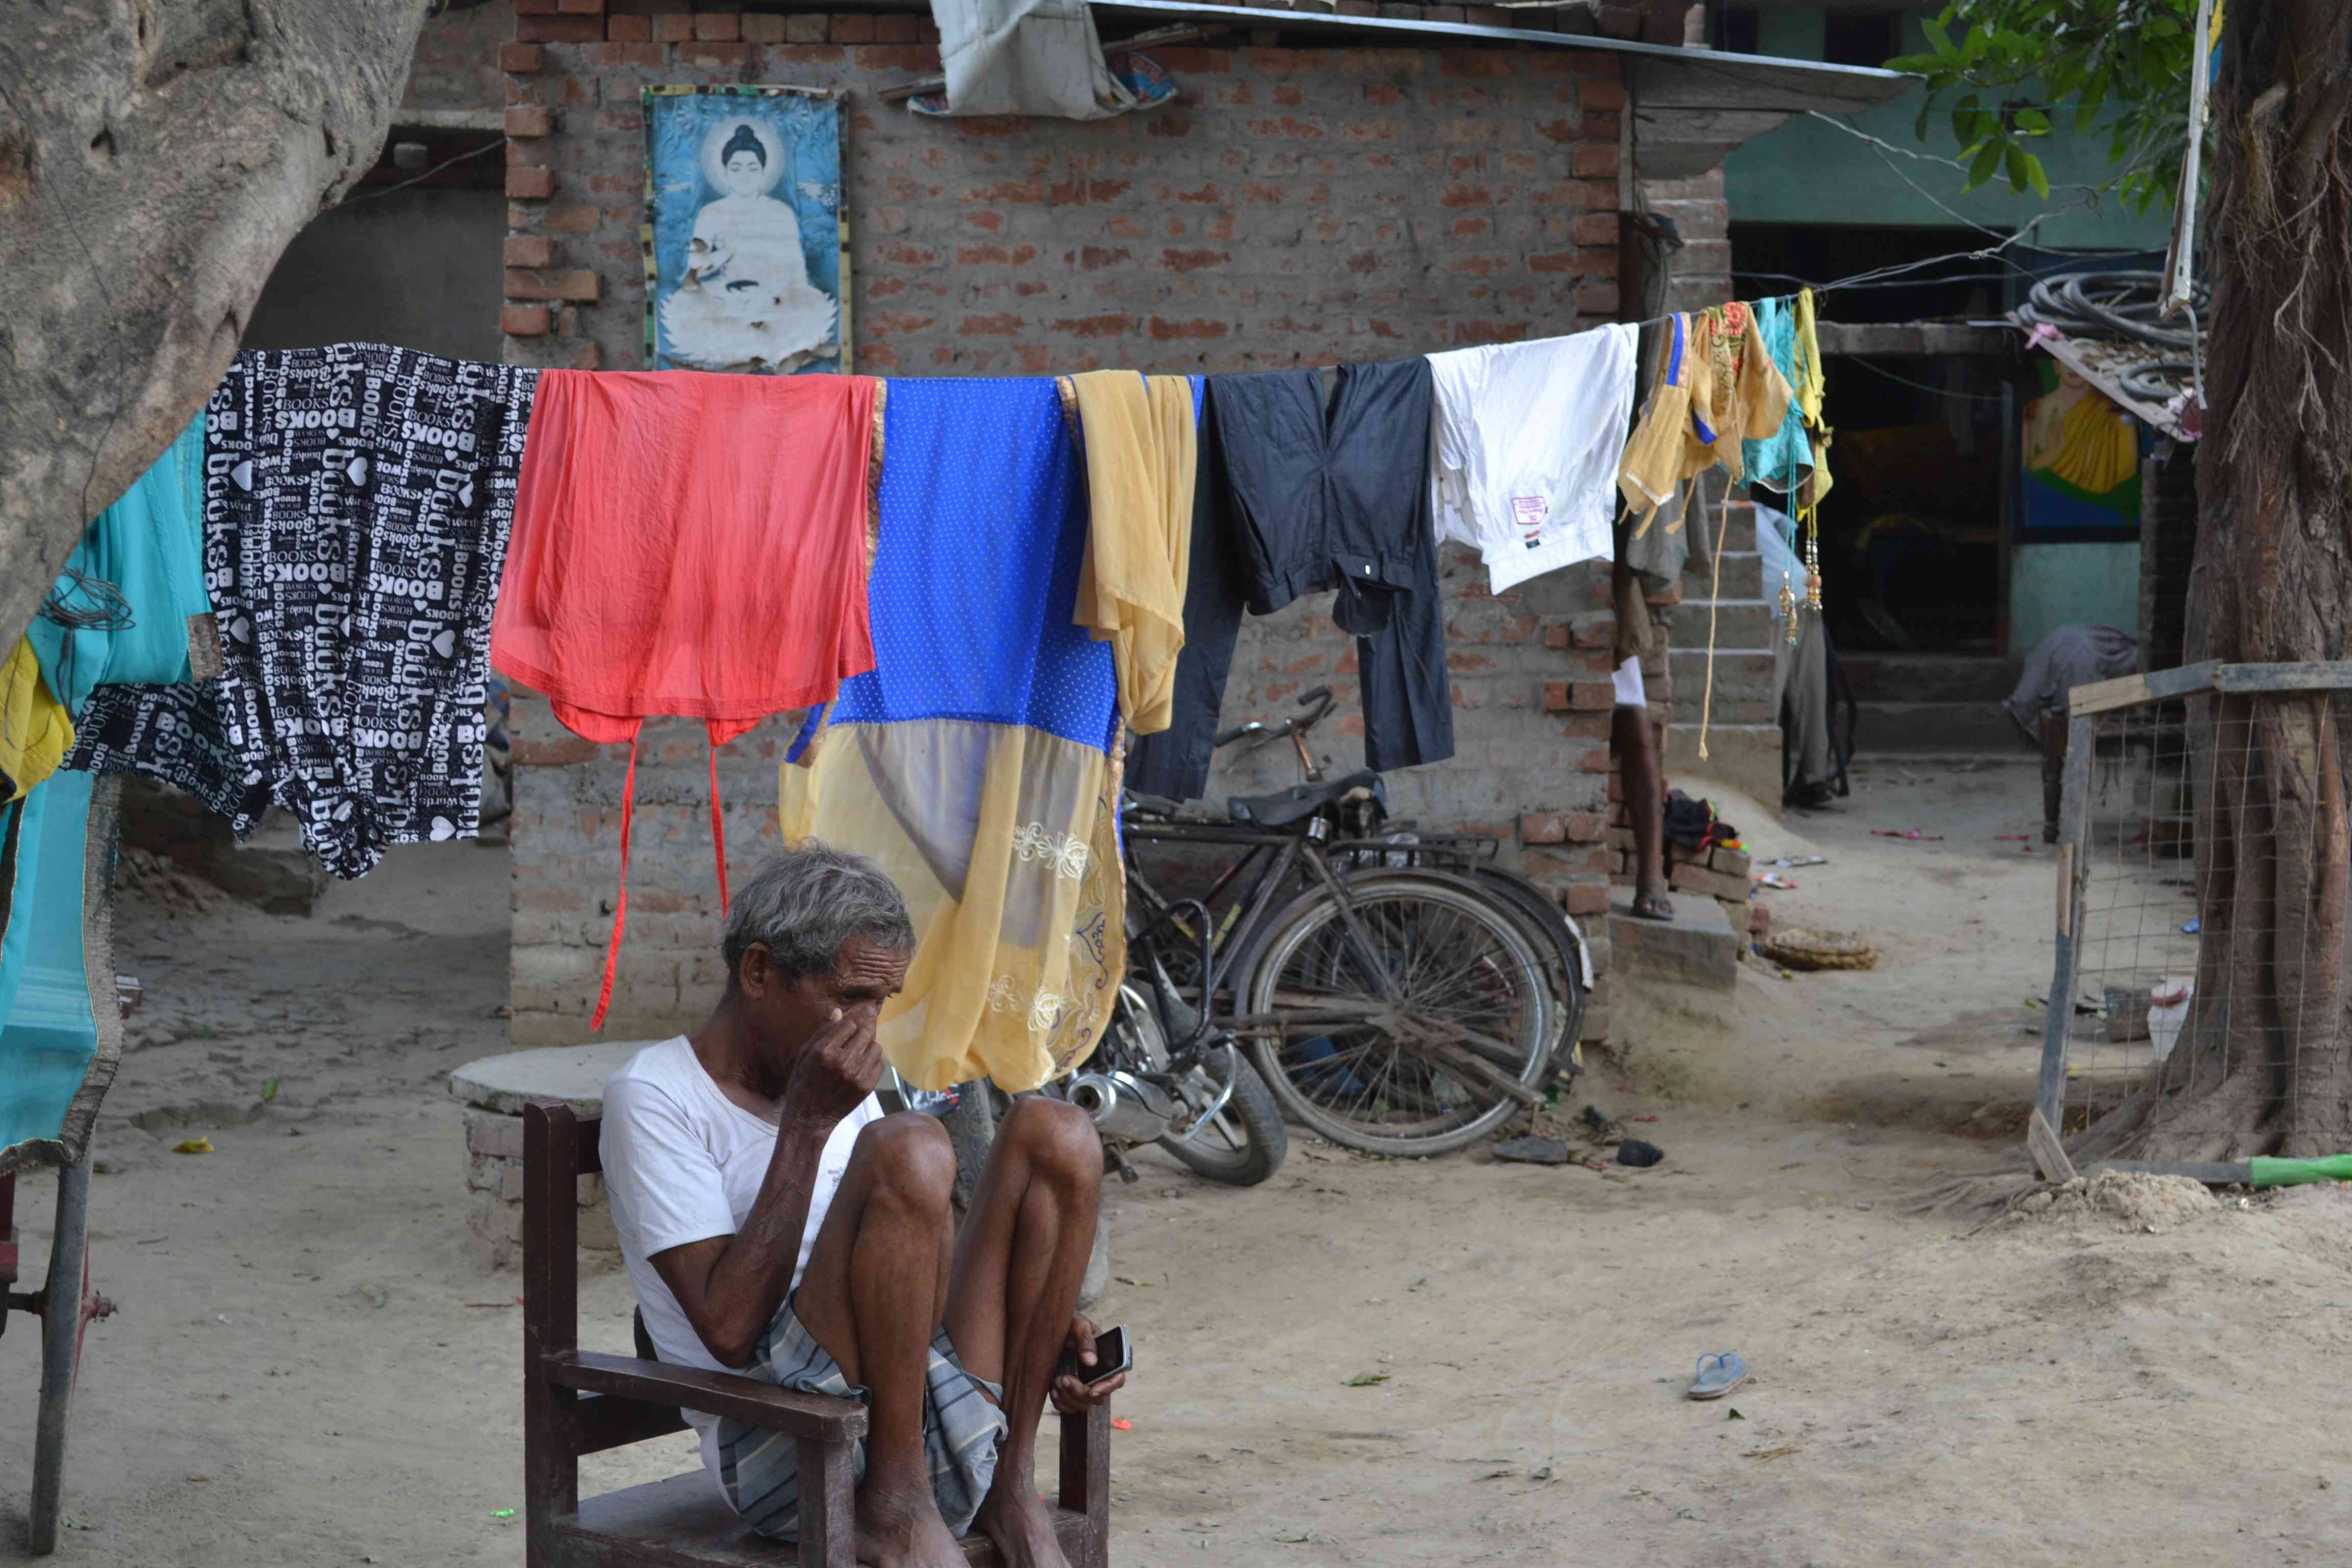 A villager outside his home in Mohripur, Gorakhpur. Photo credit: Akash Bisht